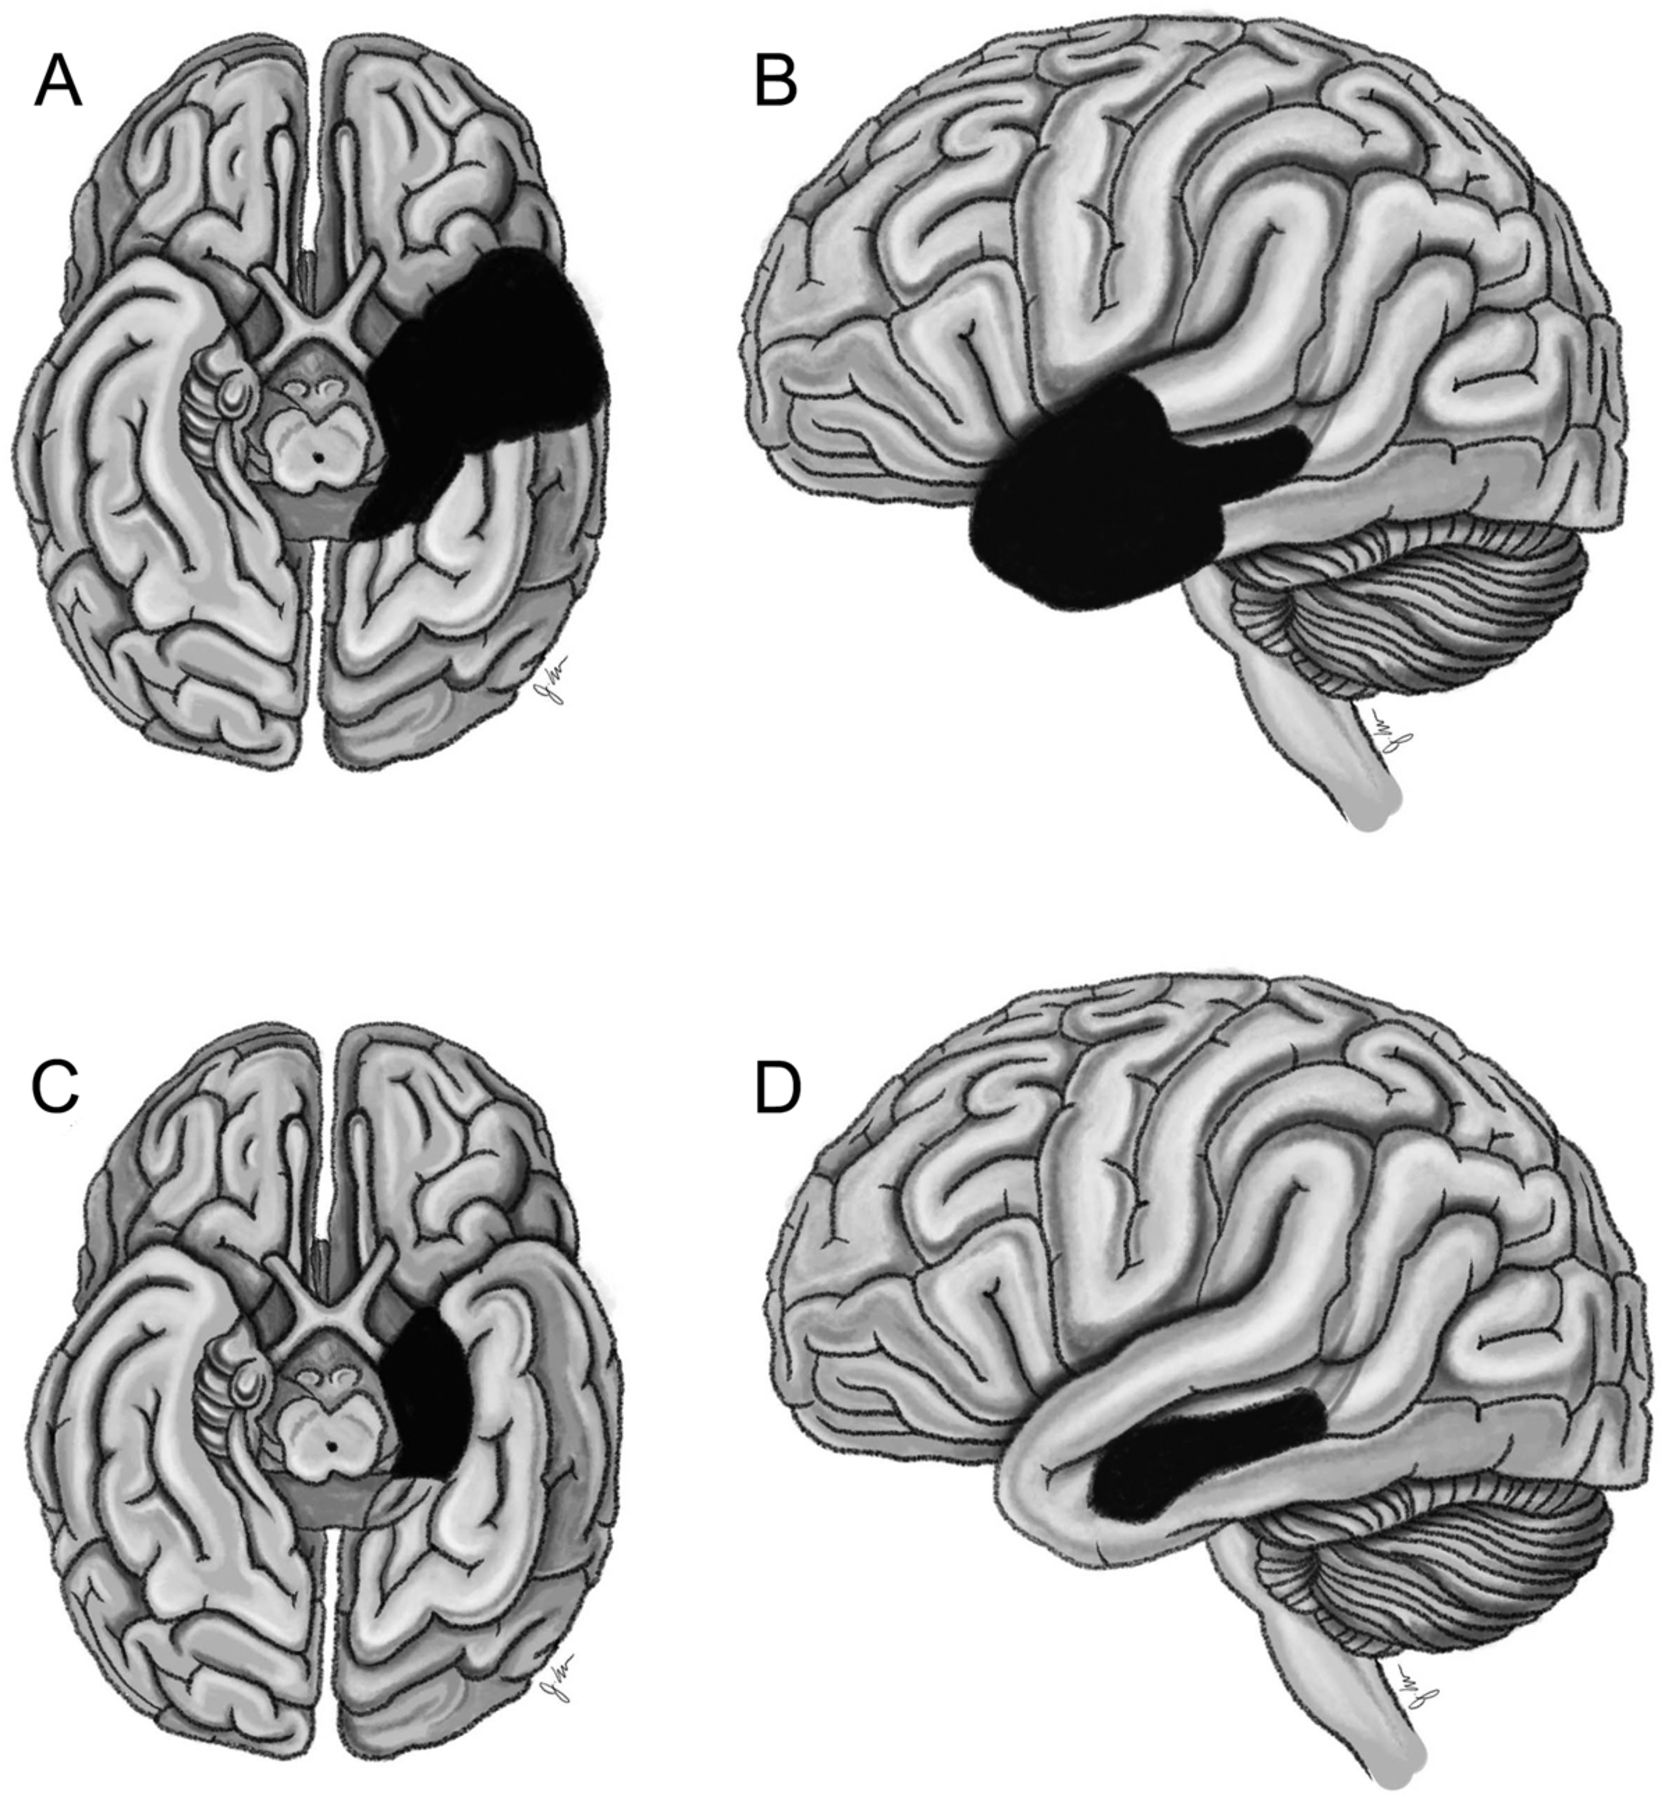 Outcomes for temporal lobe epilepsy operations may not be equal ...